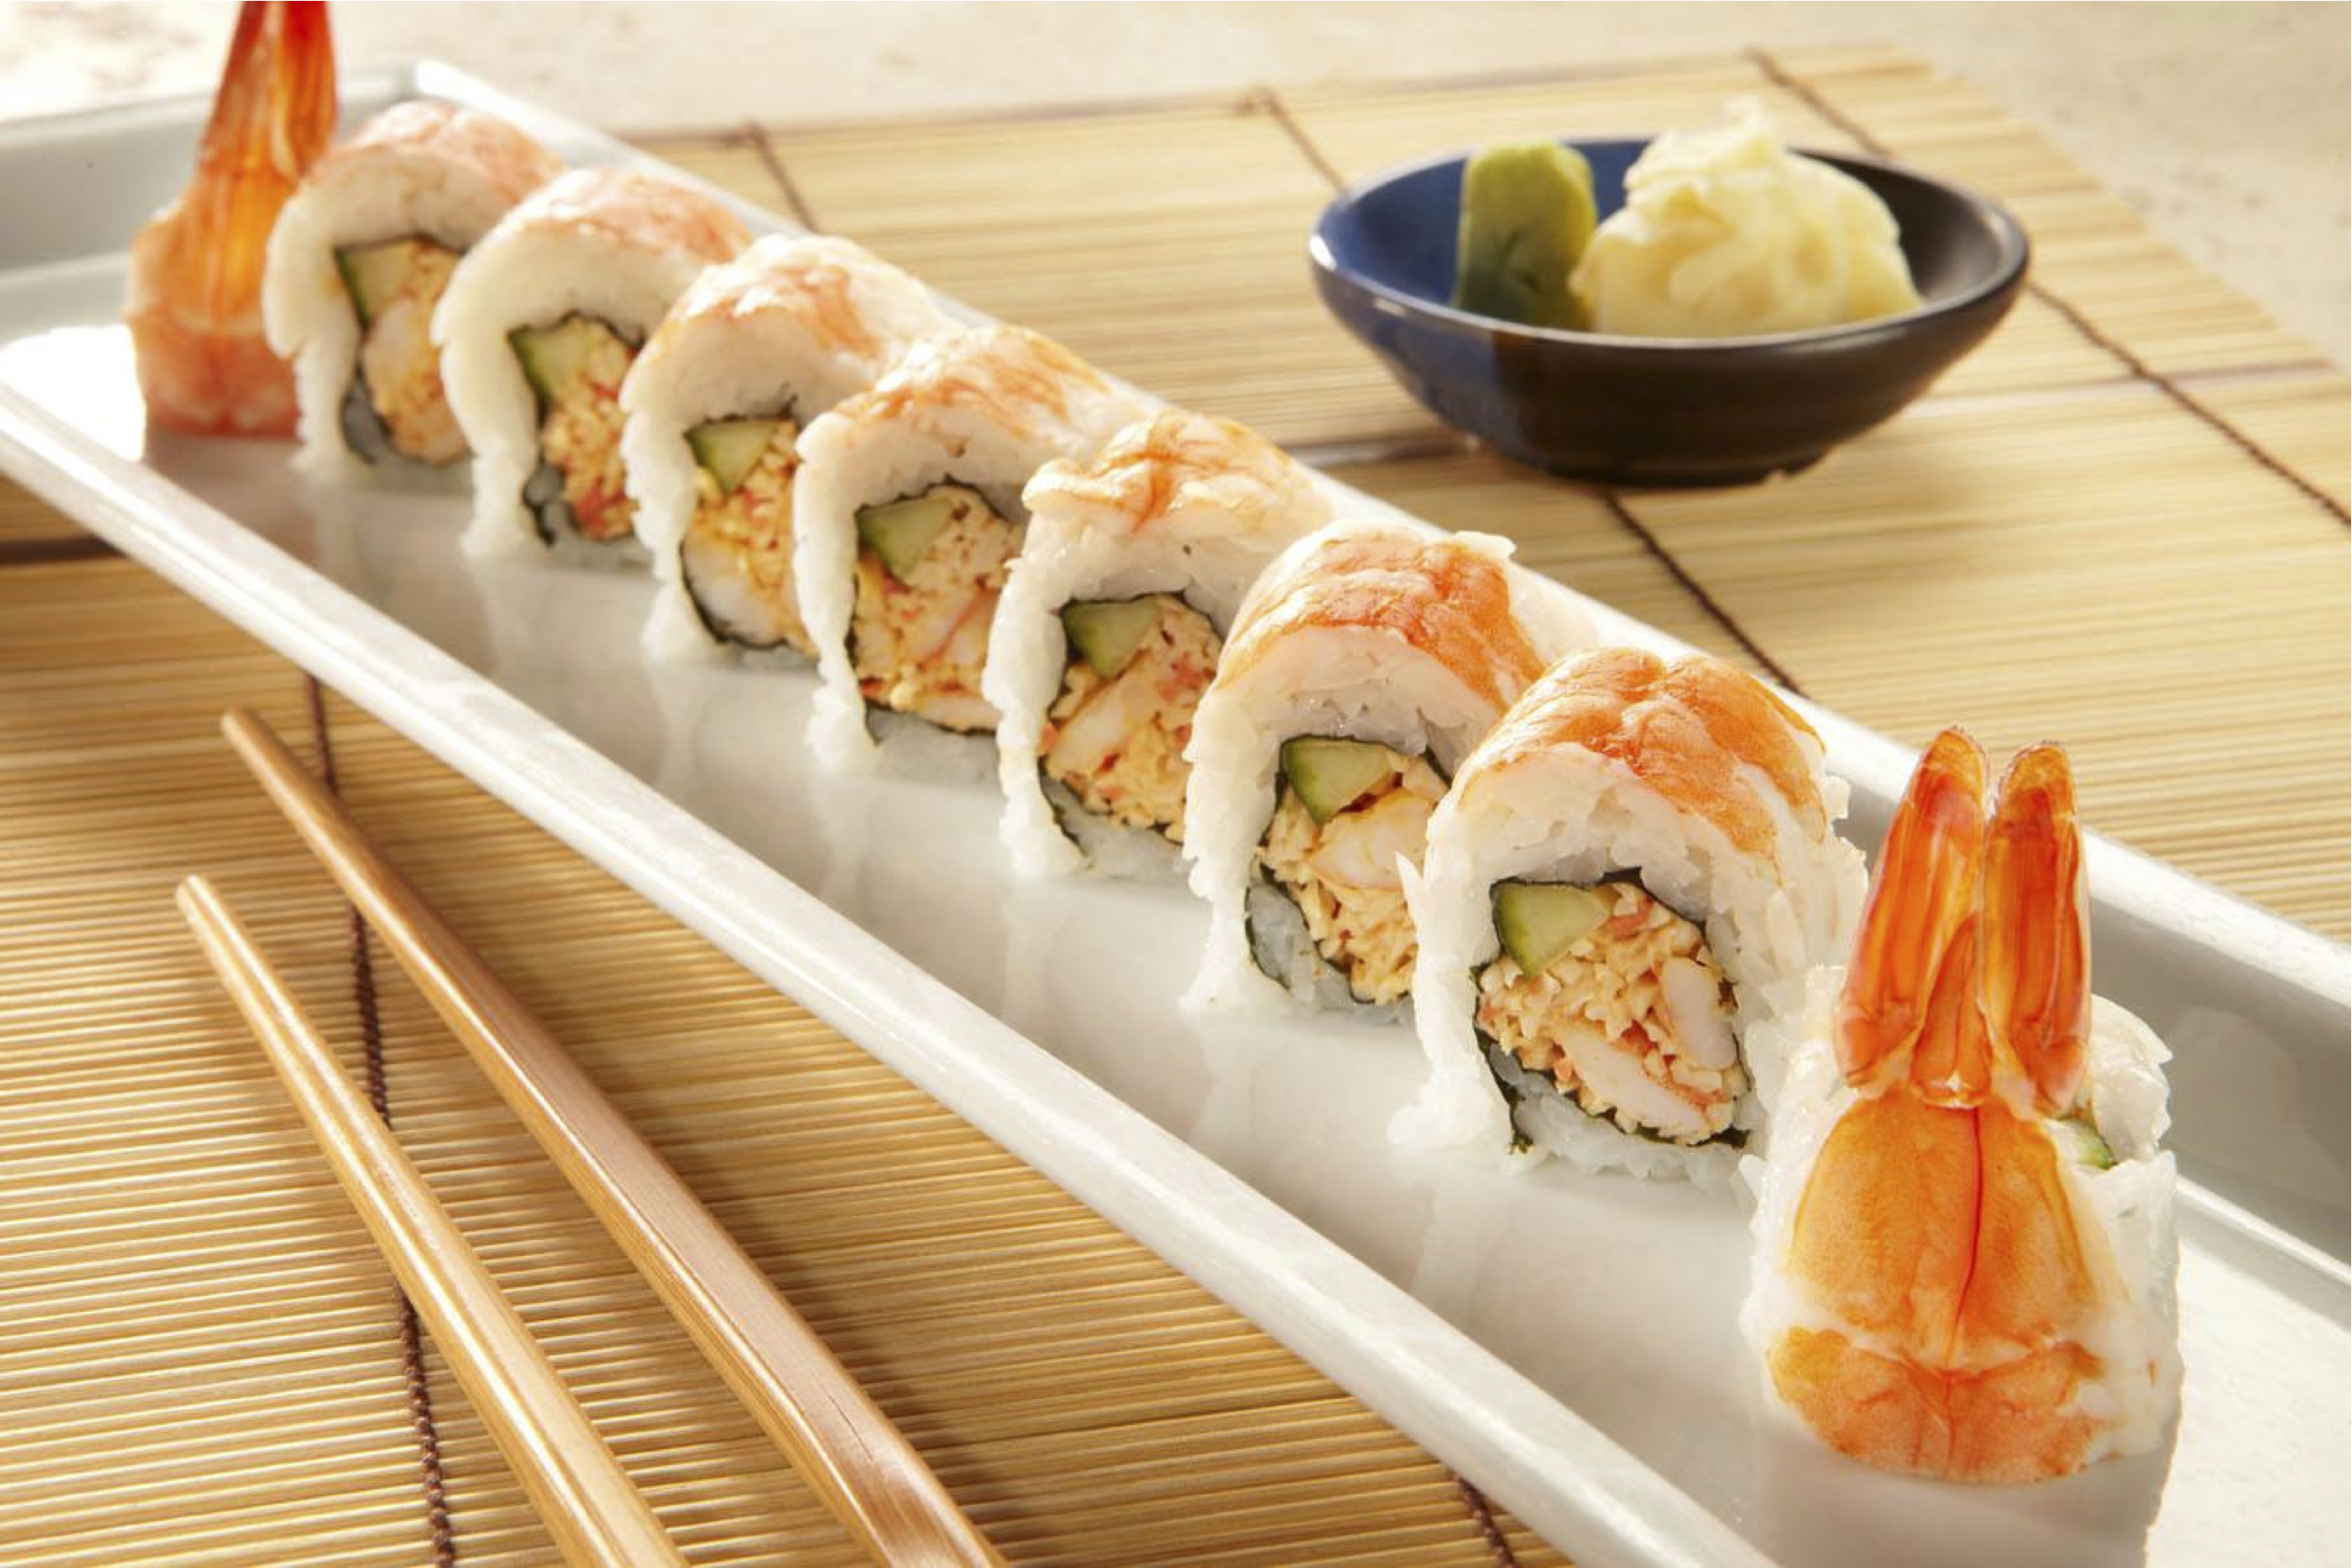 Spicy shrimp & cucumber rolled topped with shrimp.